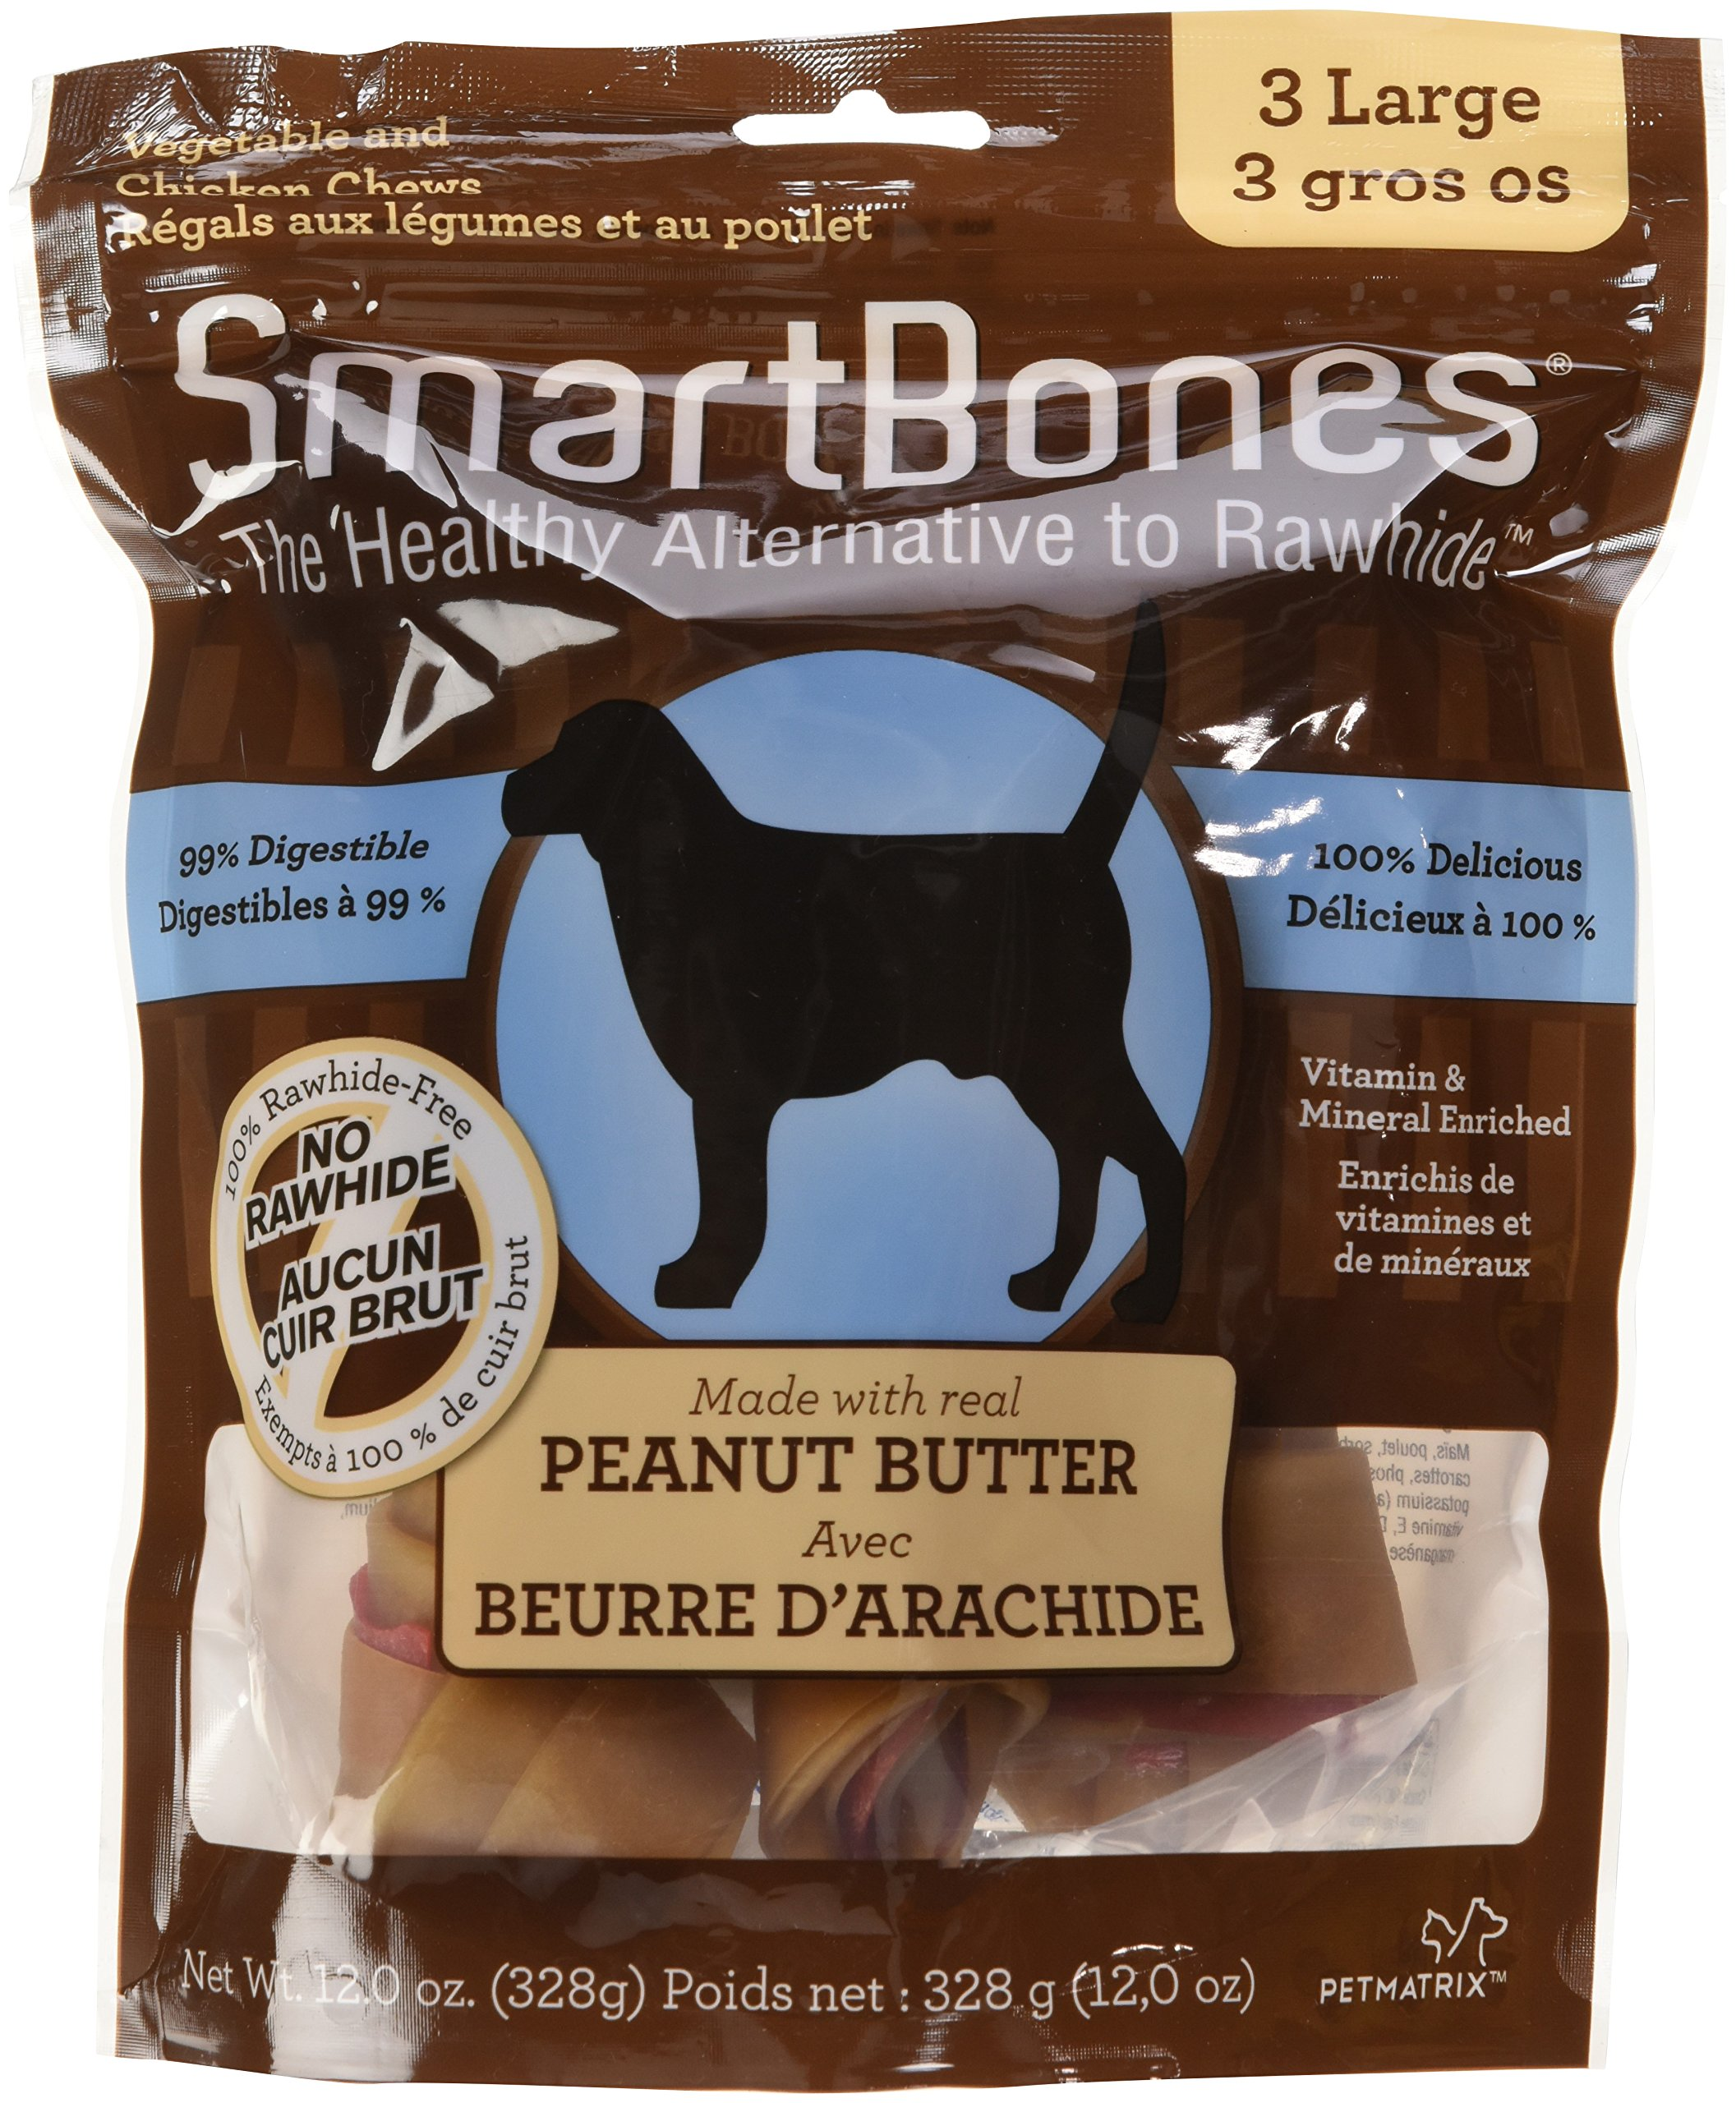 Tahitian Noni Juice Herbal Supplements Grocery Original Ter Smartbones Rawhide Free Dog Chews Made With Real Peanut Butter